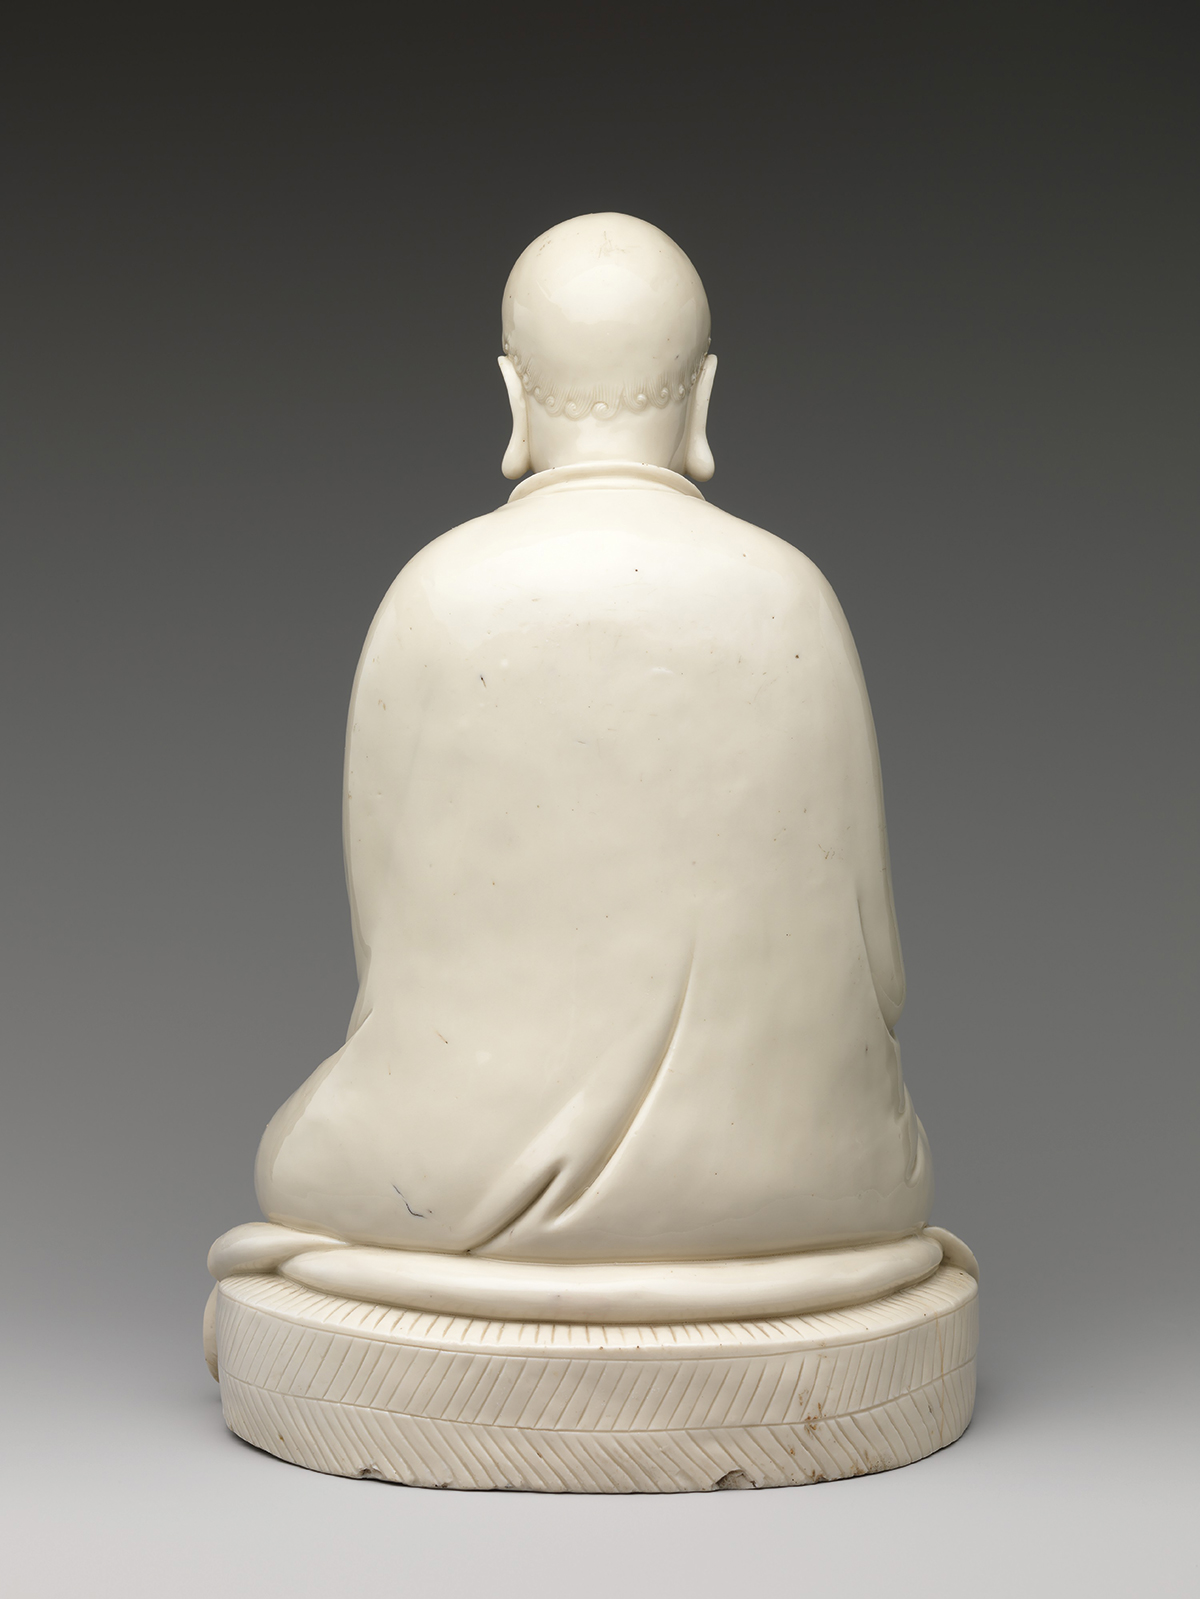 A marble Bodhidharma statue from behind.